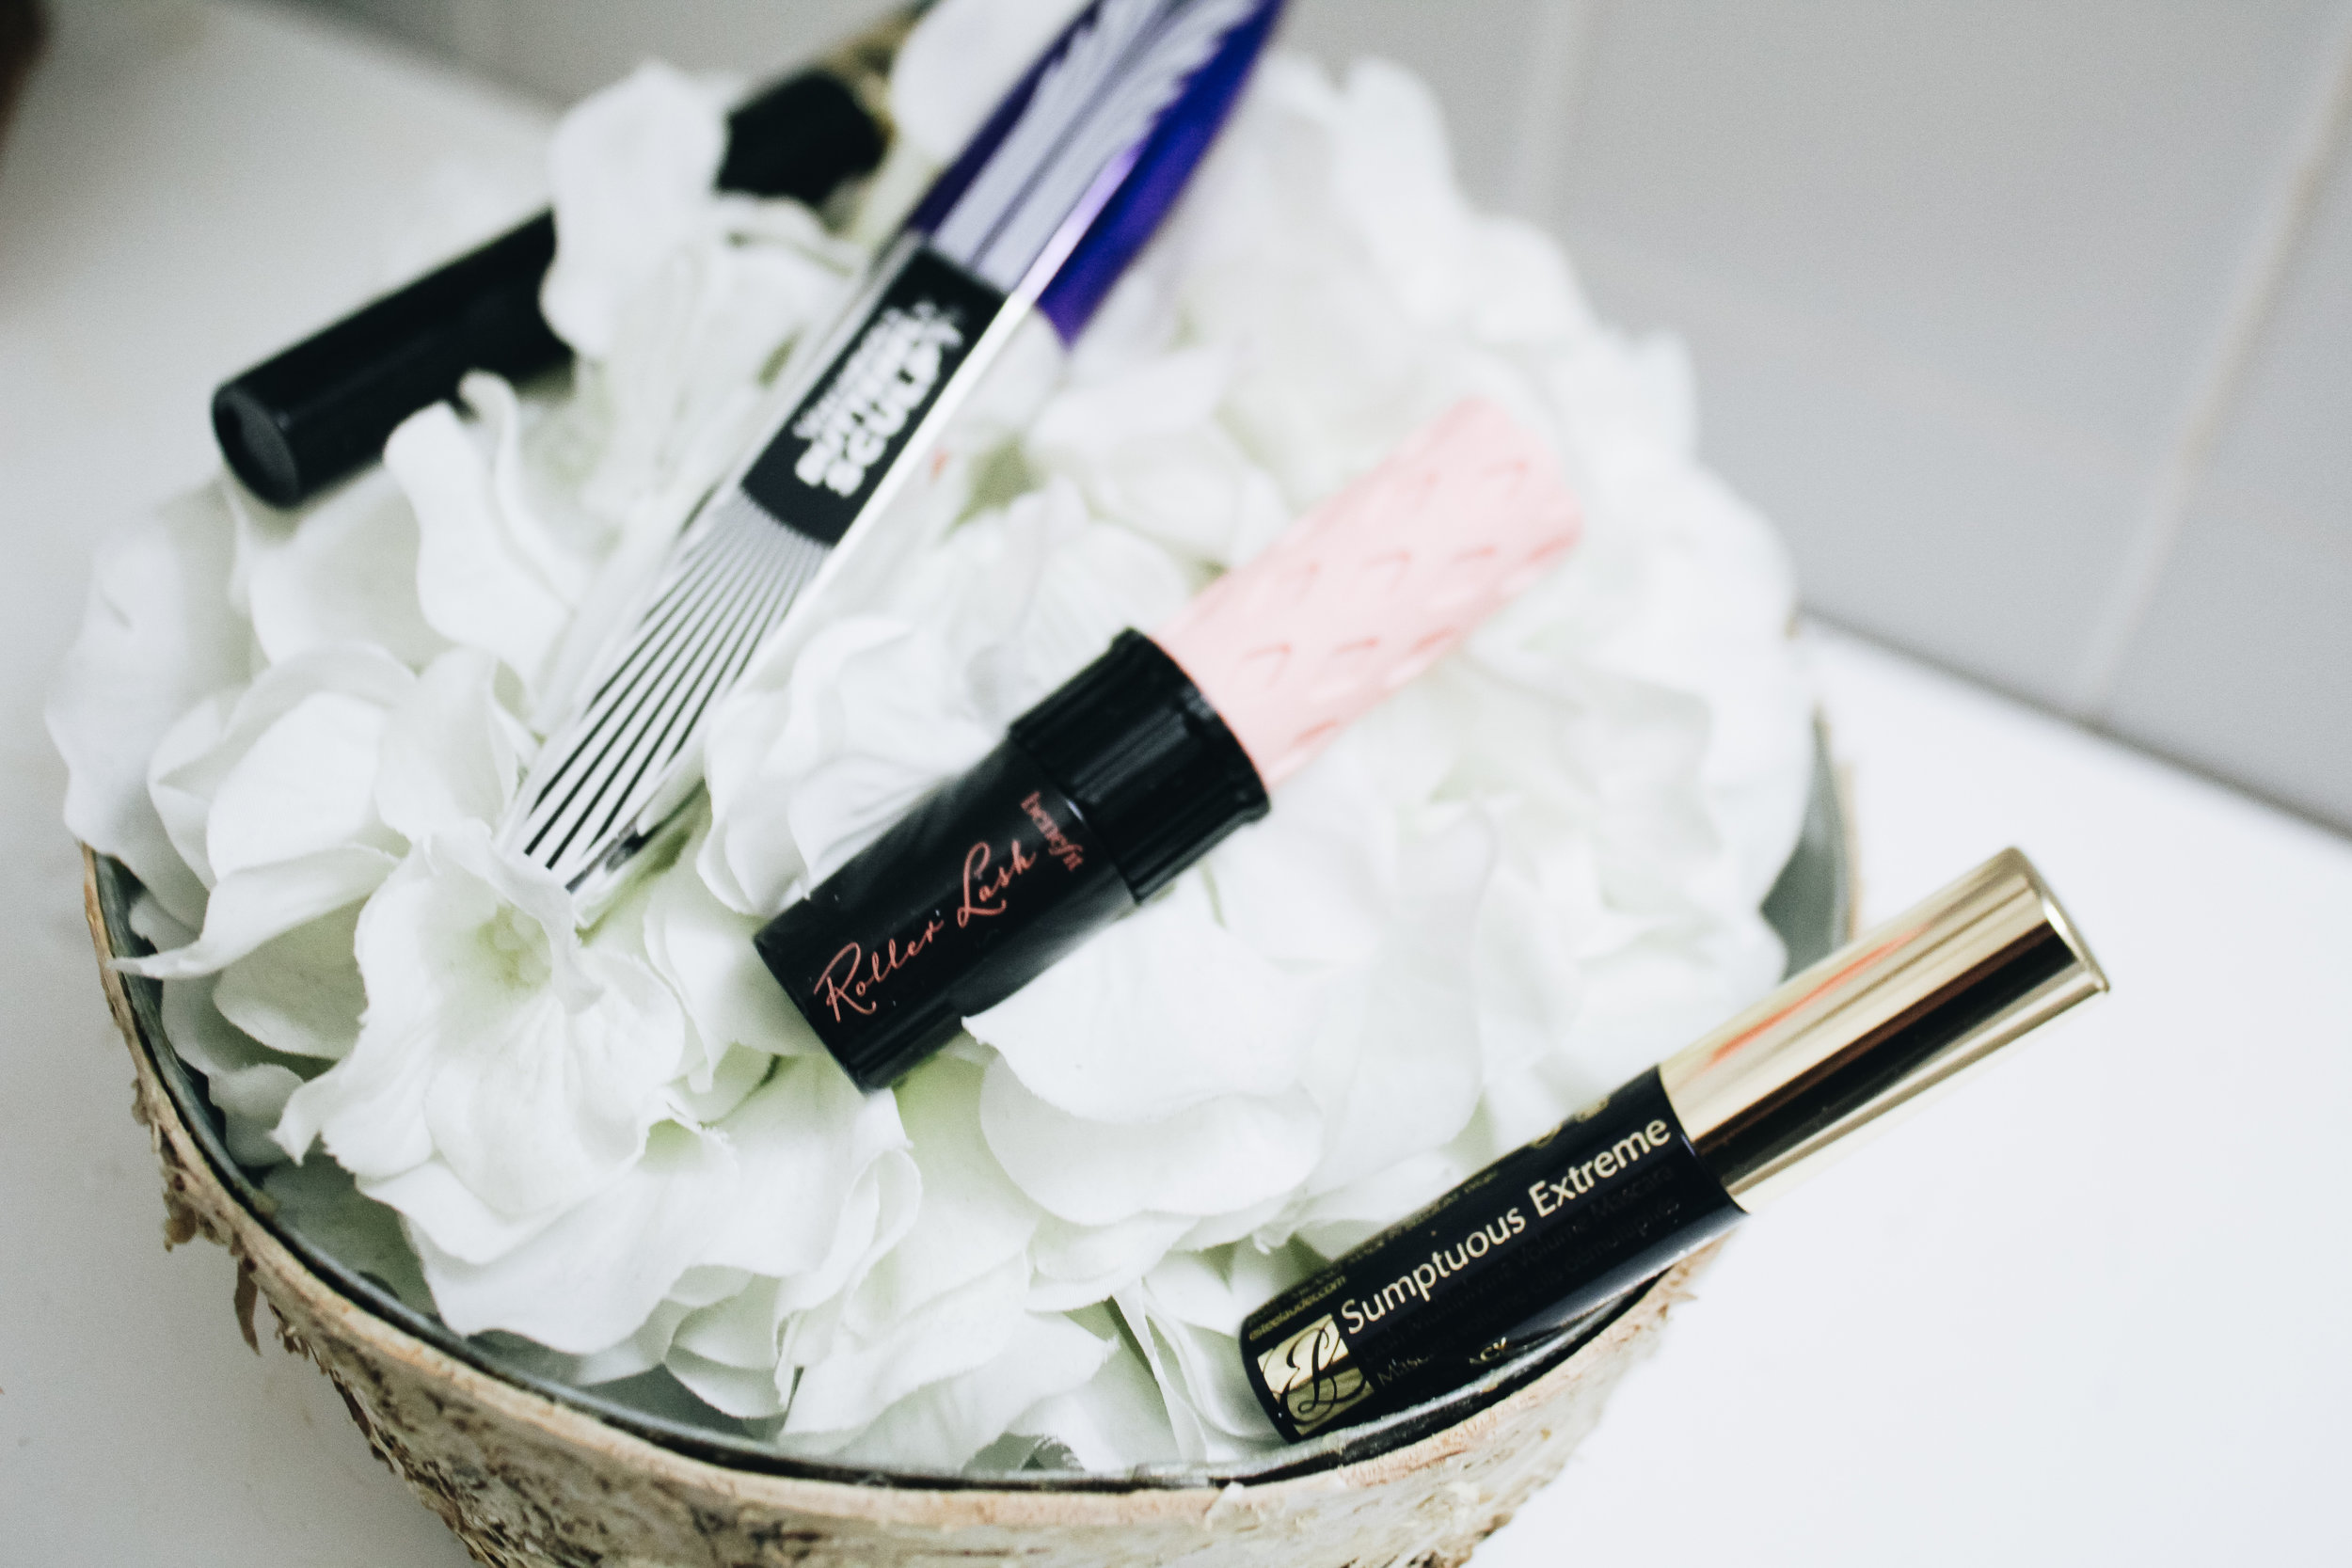 Getting the Canon T6I is a blessing! It is perfect for taking the well-lit flatlay shot! Don't forget to use your surroundings to set up the shot! I took this on the bathroom counter of my sorority house and used the basket of flowers to create a nice contrast!